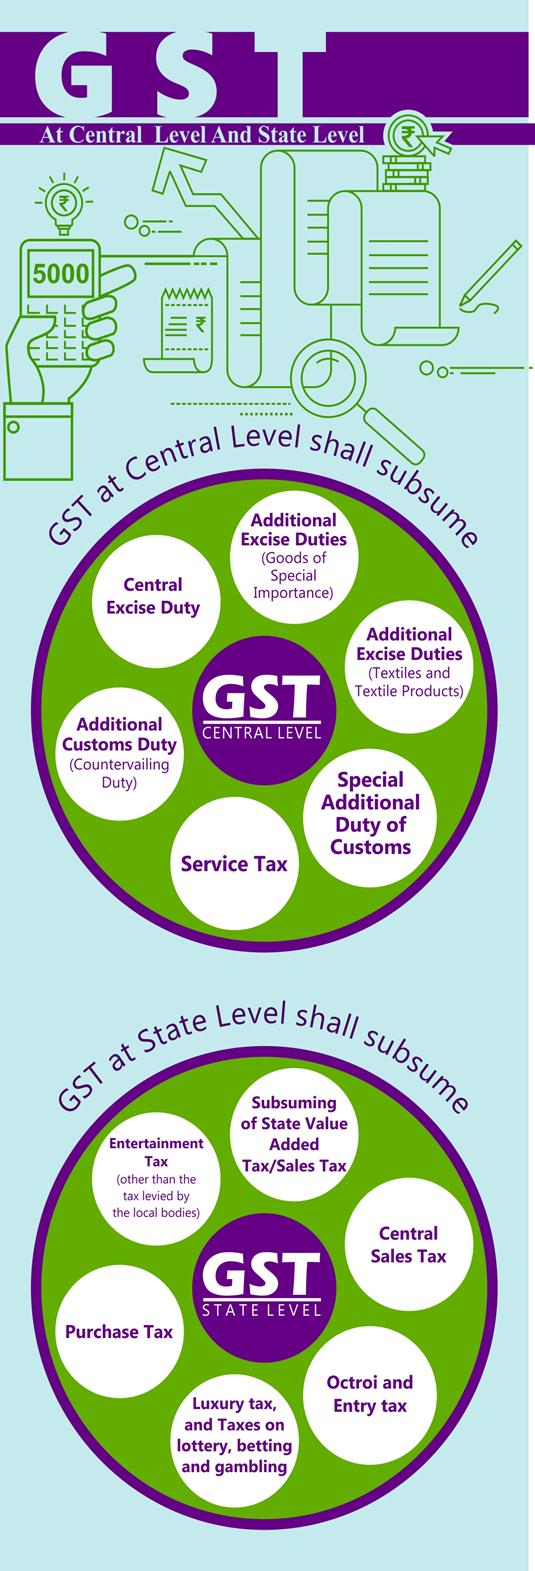 GST Central Level and State Level